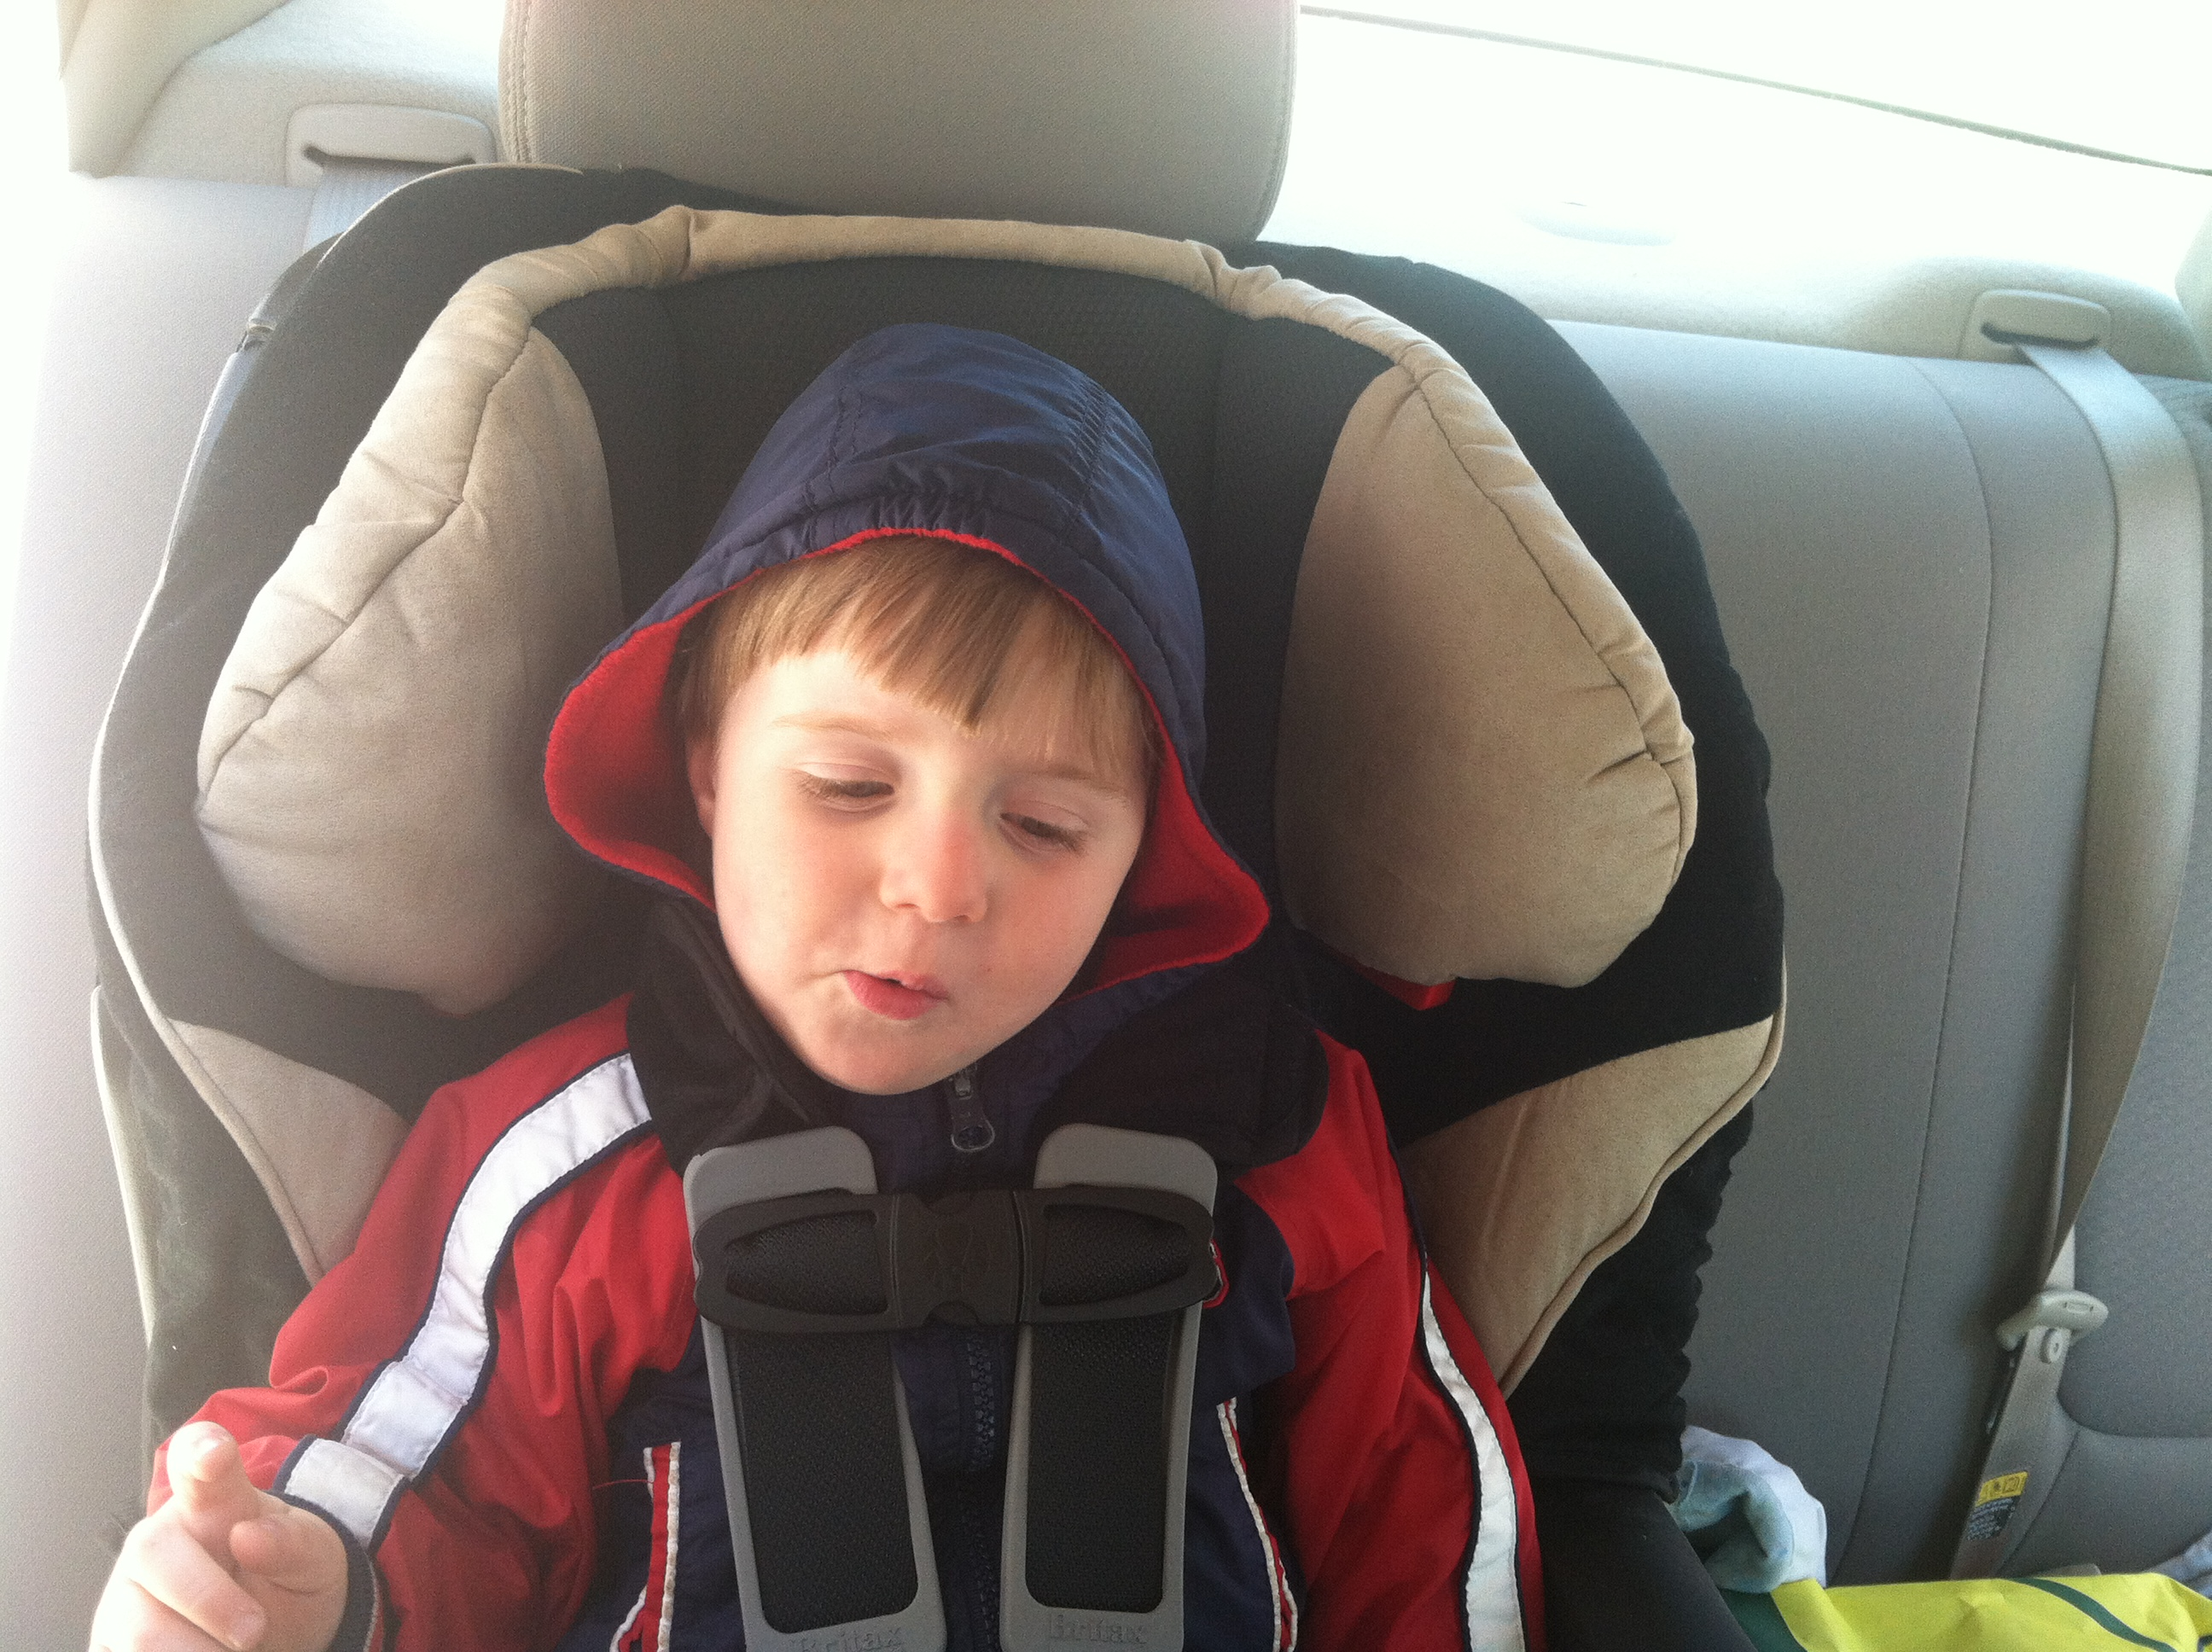 Faith And Family ReviewsBritax Frontier 85 Car Seat Review